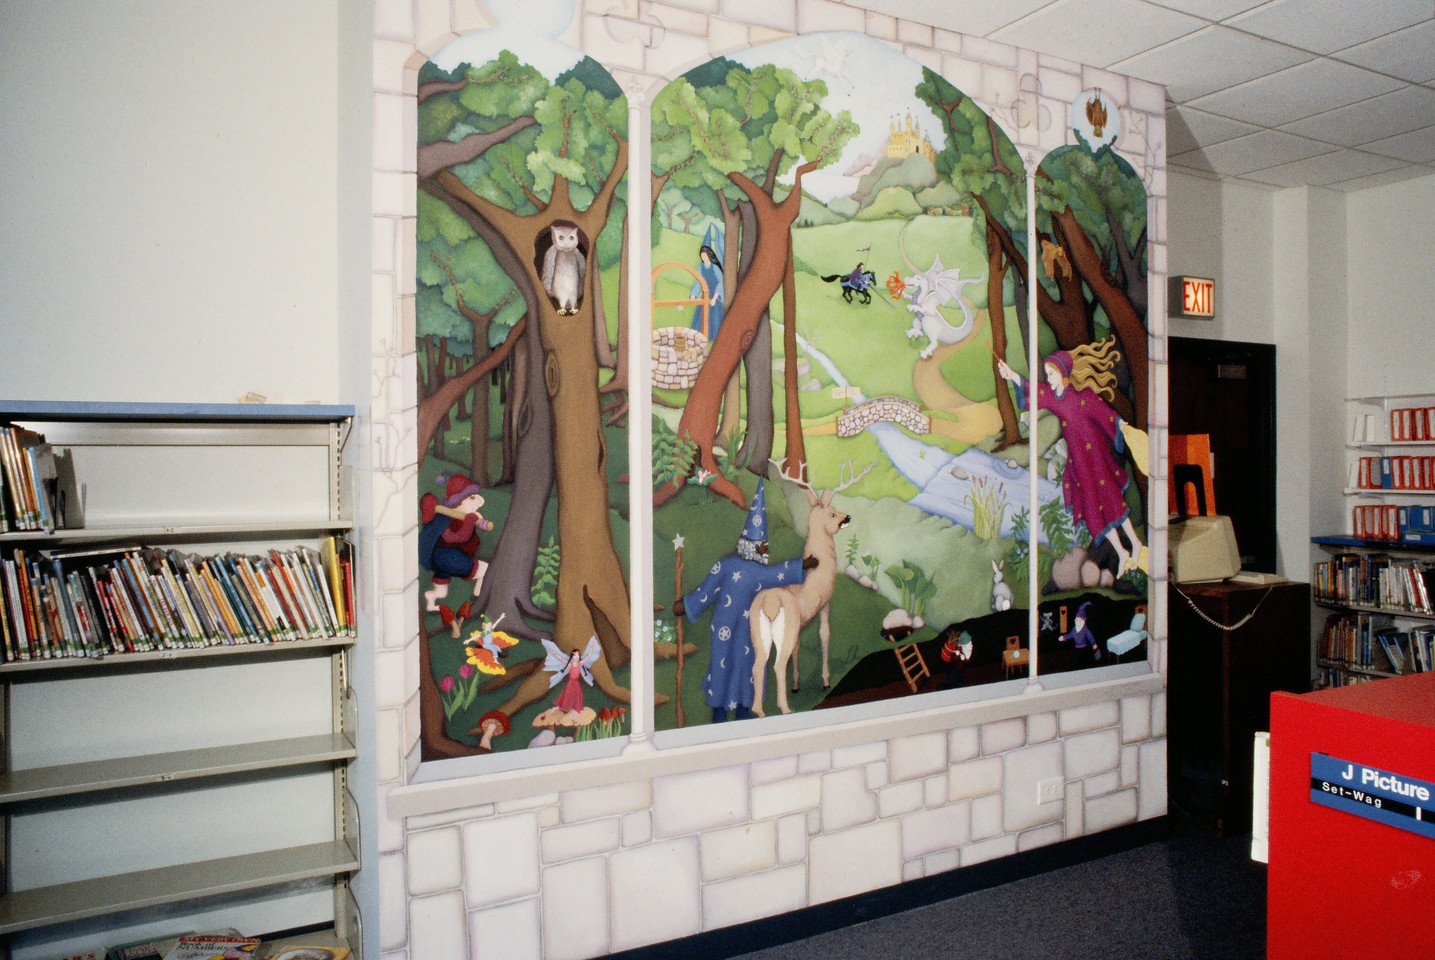 Inger Boye Children's Room mural, Highland Park Library, Highland Park IL, 8' x 15'